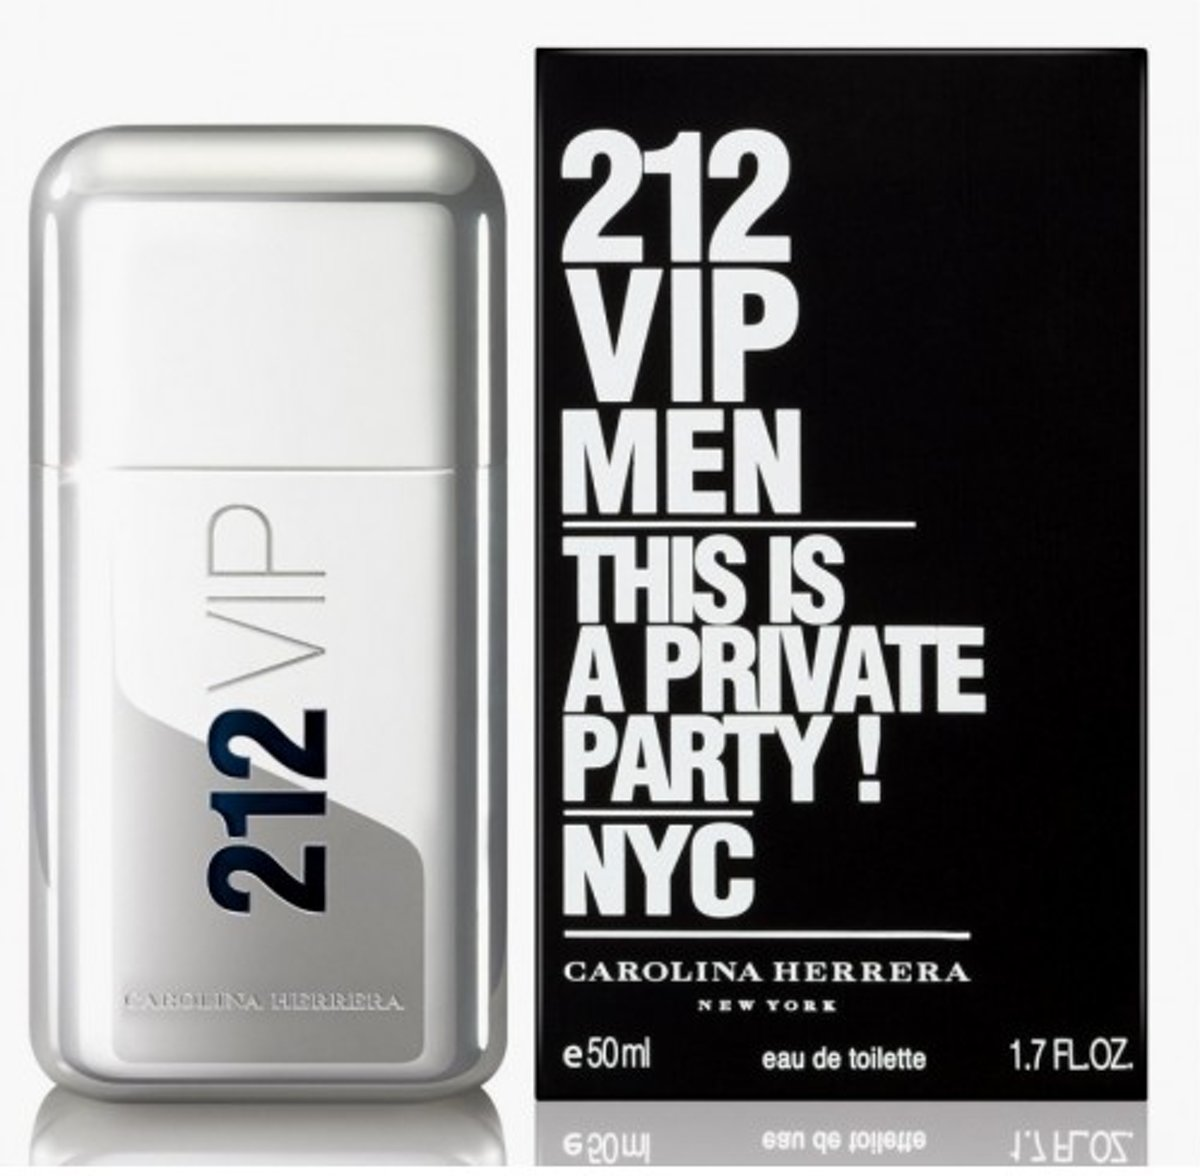 MULTI BUNDEL 5 stuks Carolina Herrera 212 Vip Men Eau De Toilette Spray 50ml